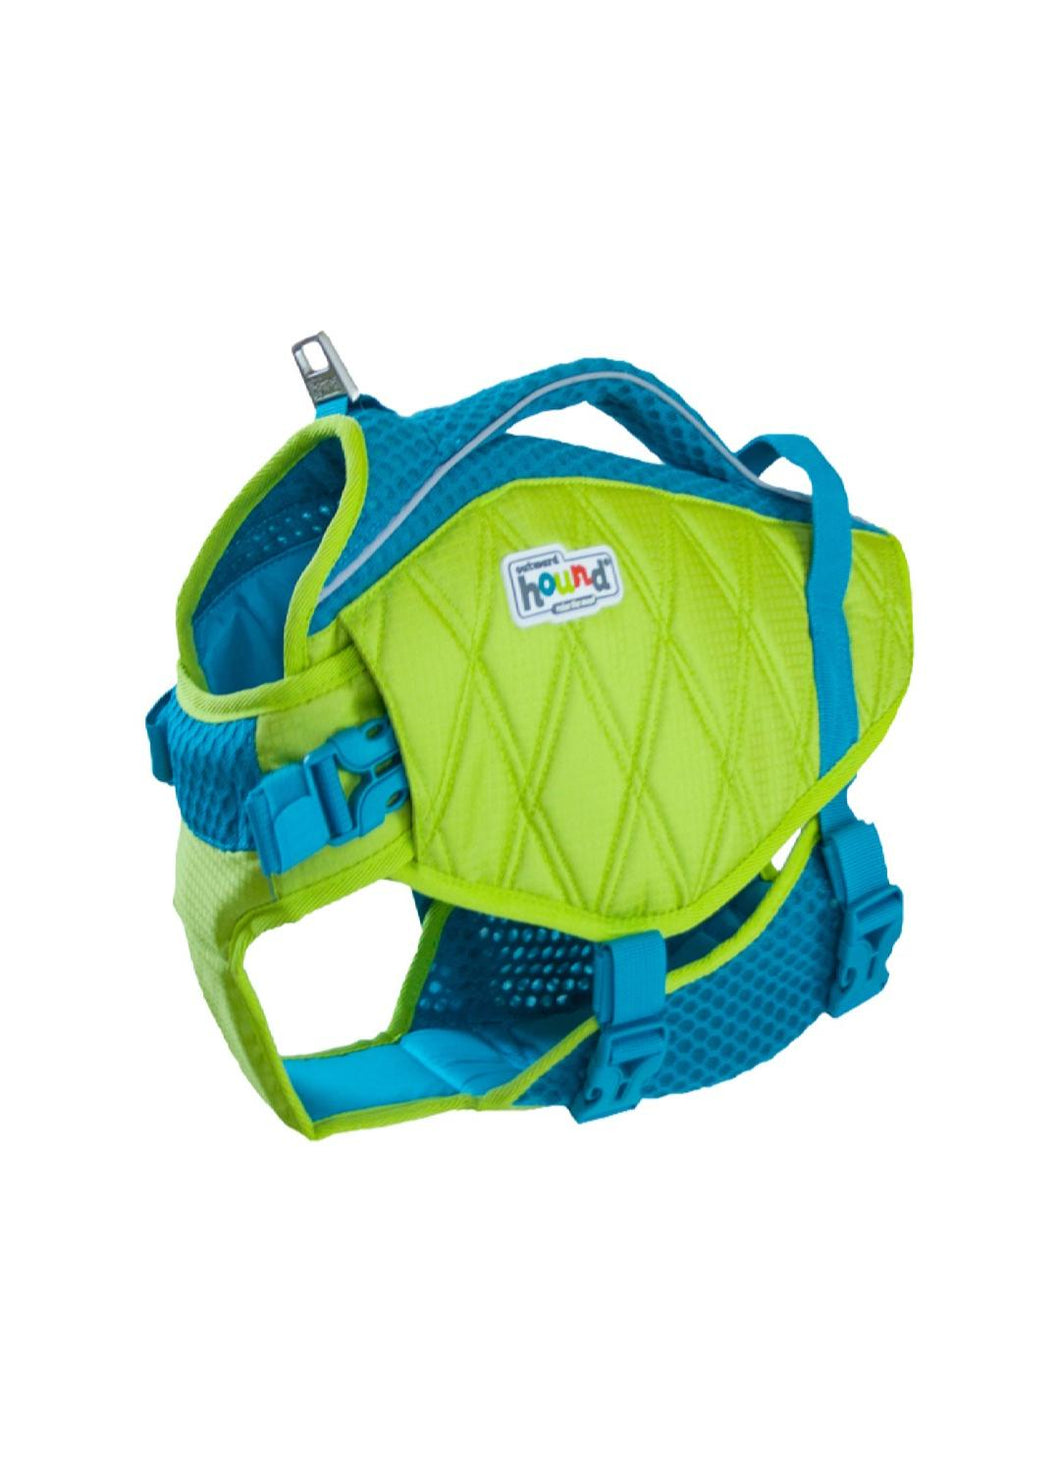 Outward Hound Standley Sport Life Jacket Green LG